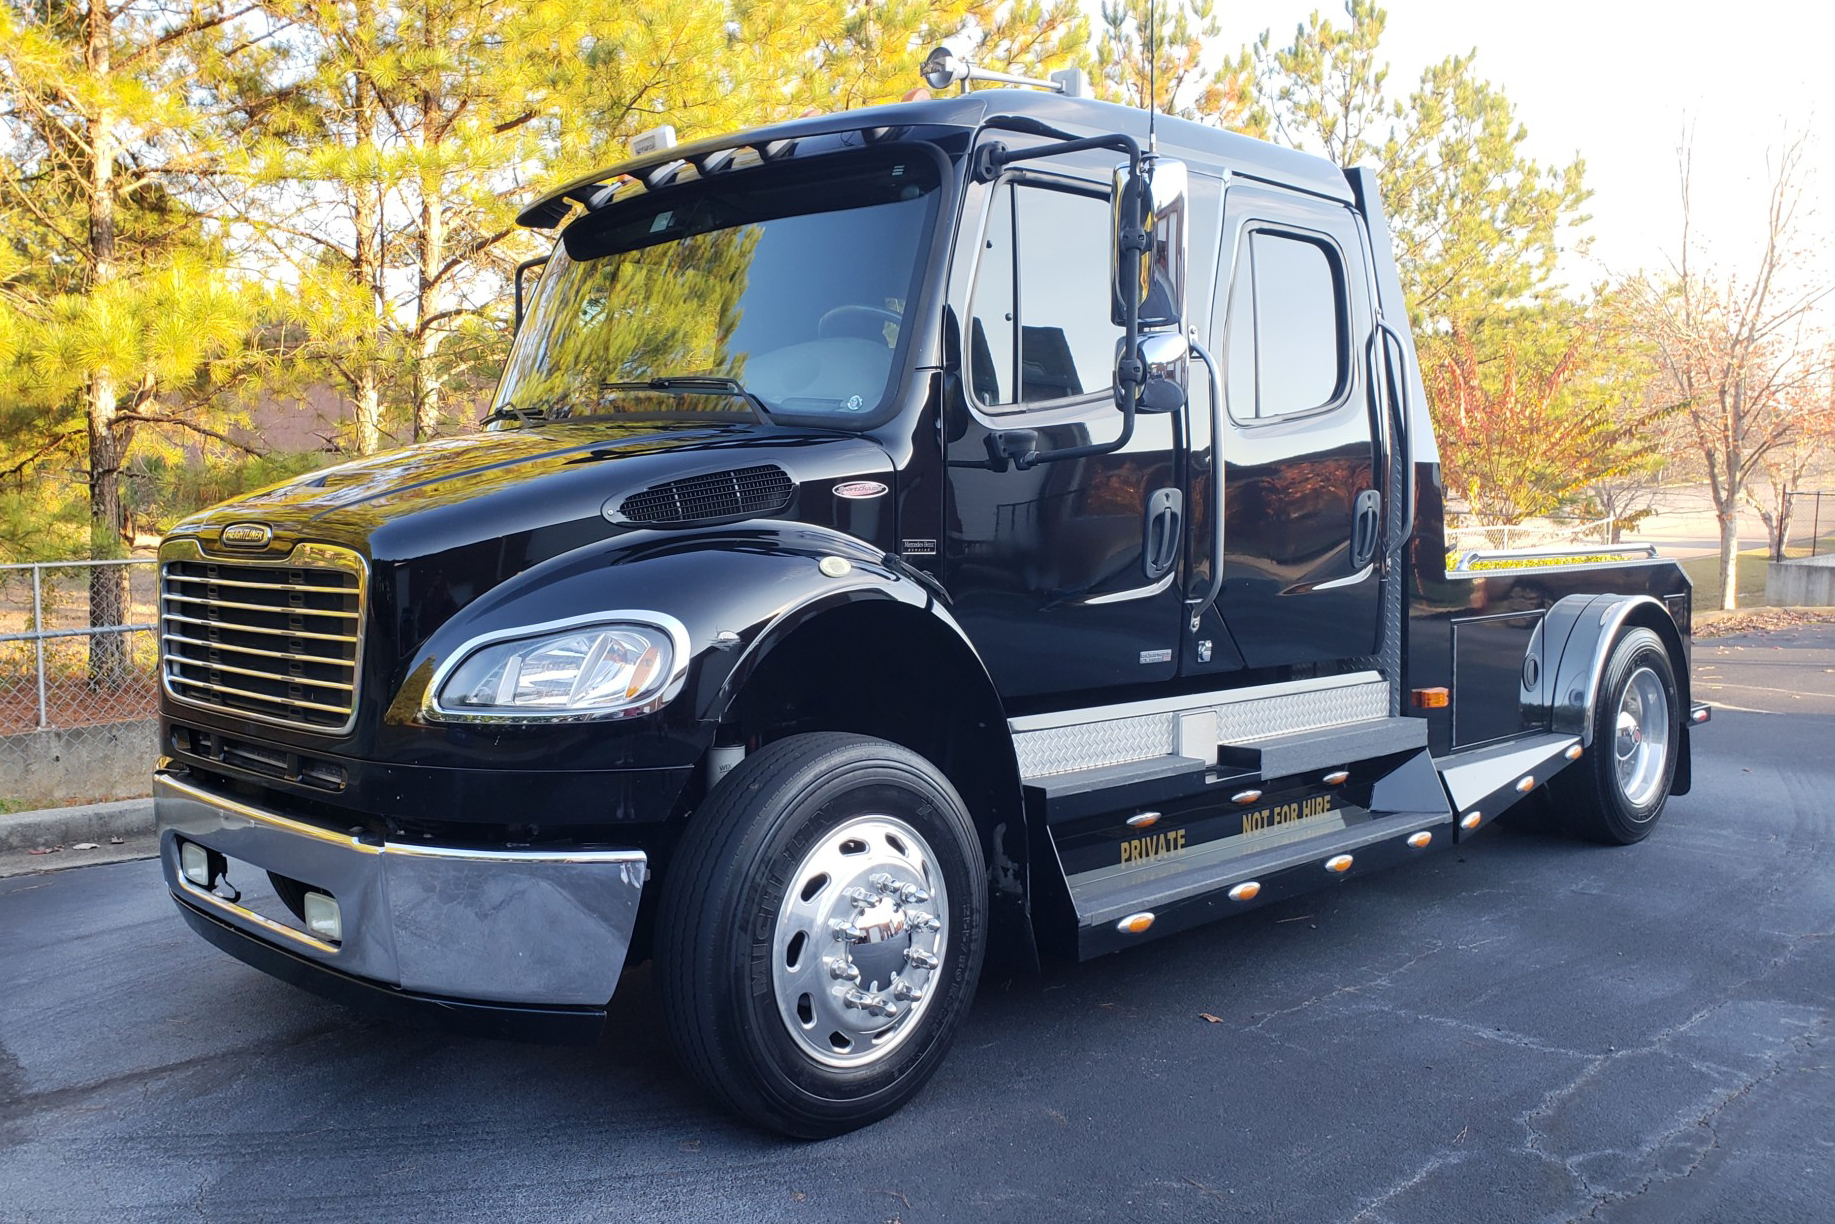 hight resolution of no reserve 2007 freightliner m2 sportchassis for sale on bat auctions sold for 45 250 on january 4 2019 lot 15 351 bring a trailer